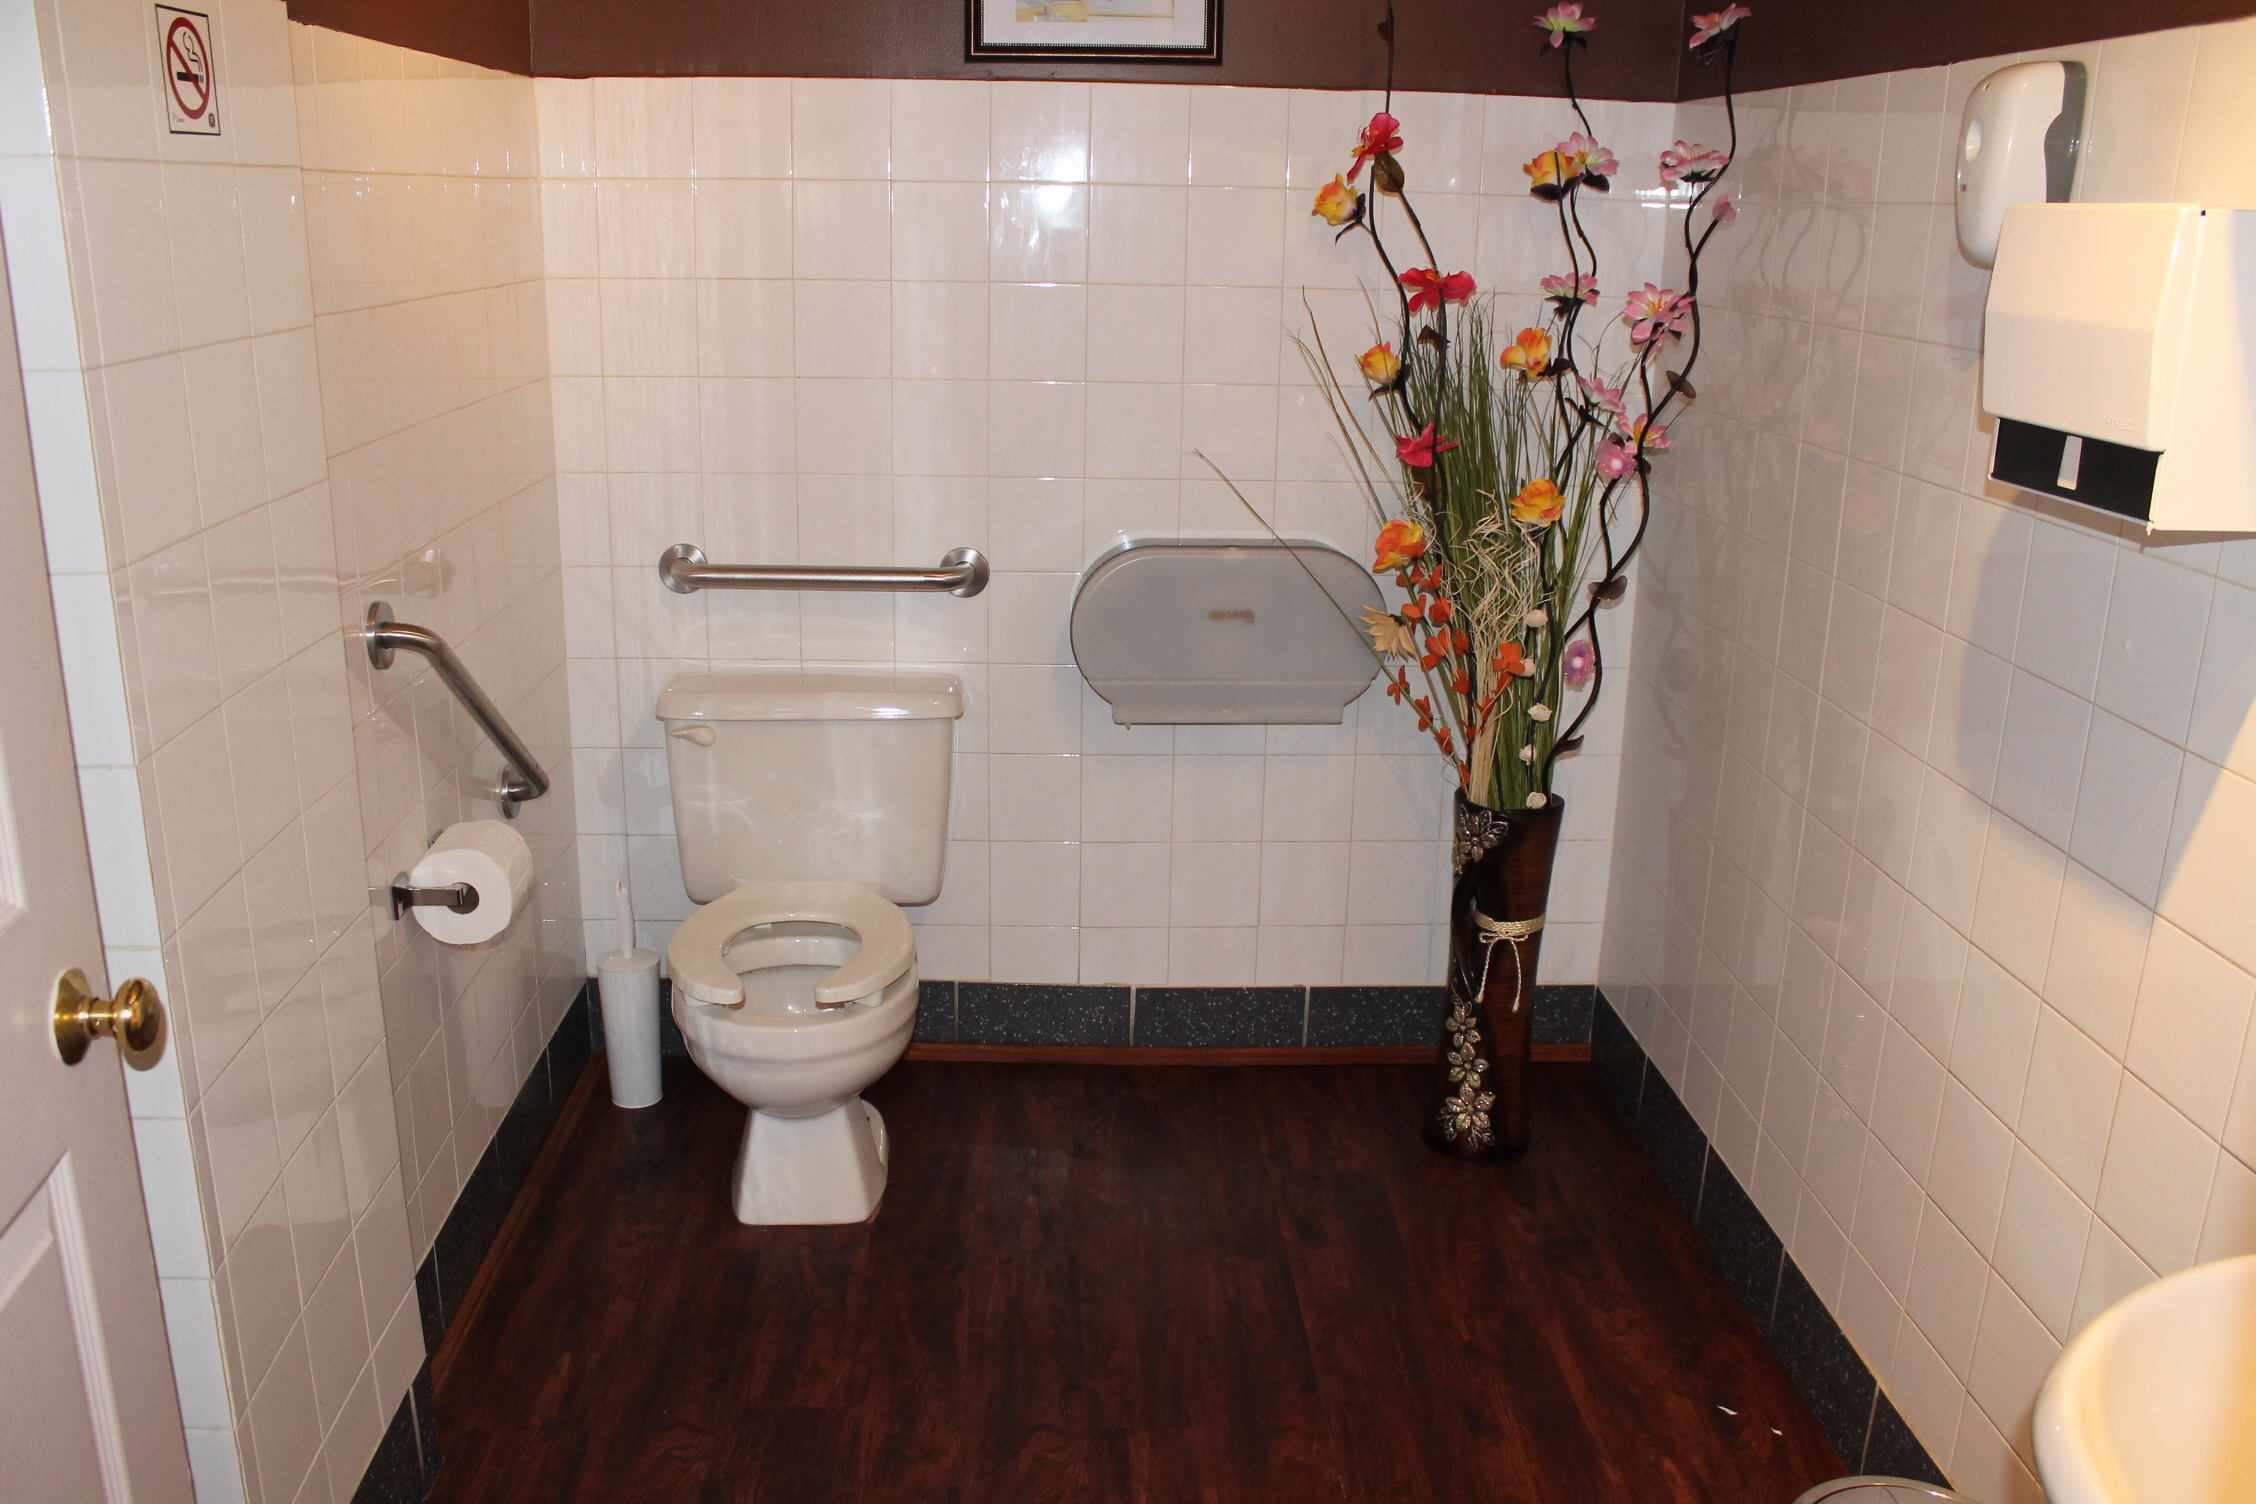 Toilet with two grab bars